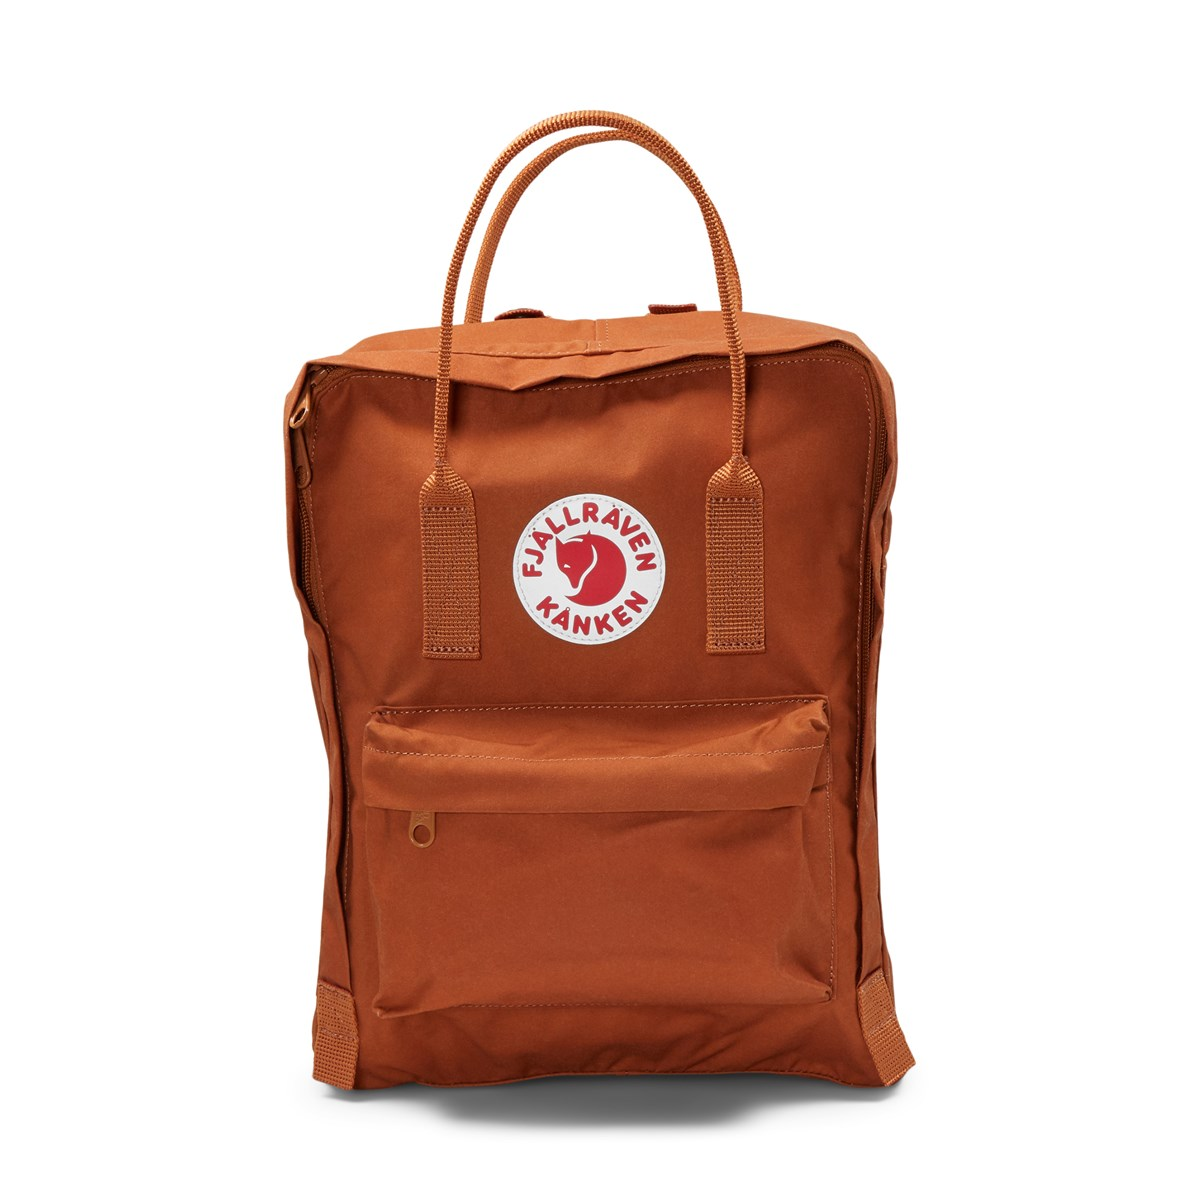 Kanken Backpack in Dark Orange